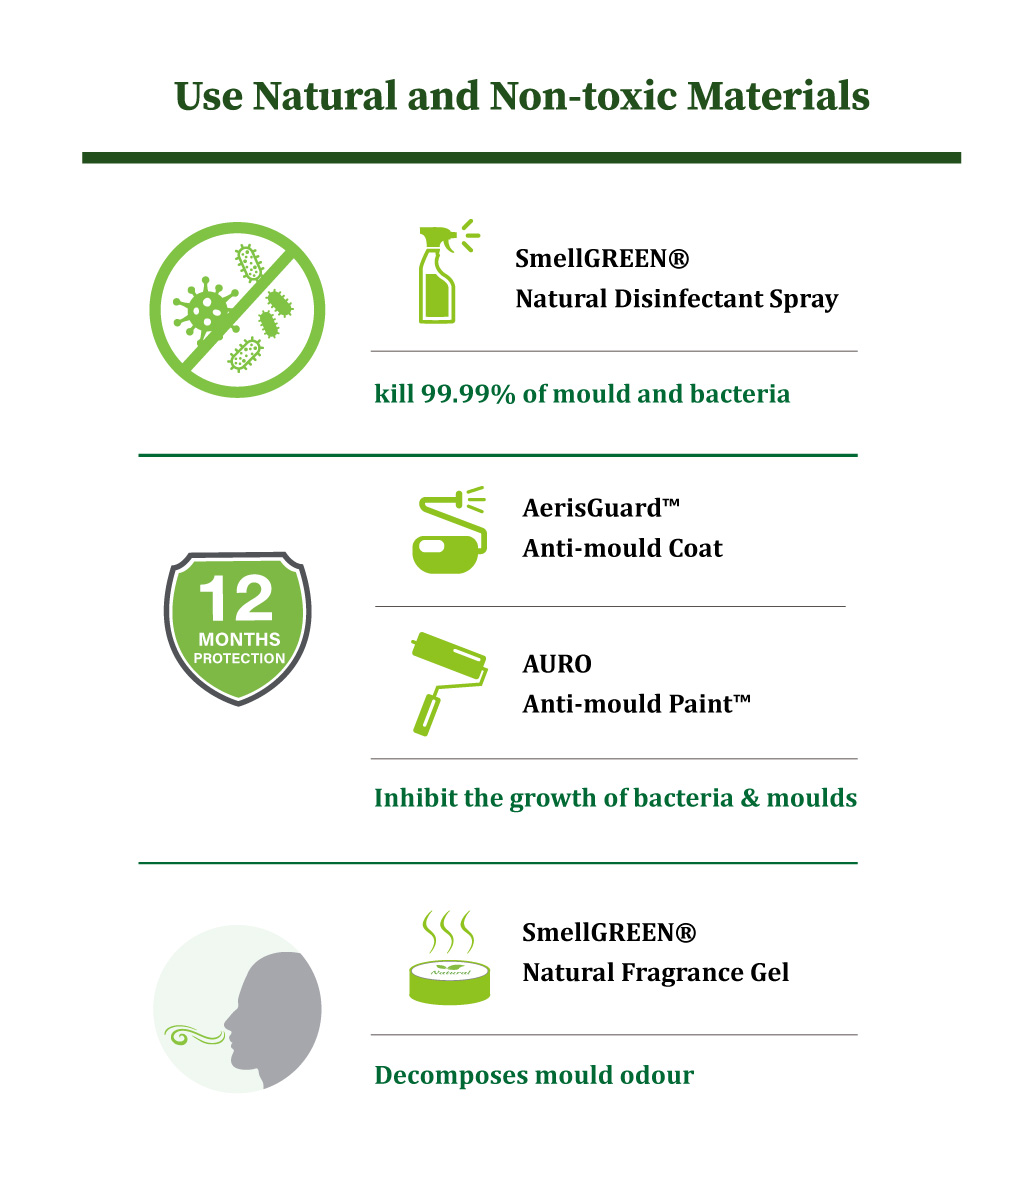 Mould Removal & Prevention- Non-toxic Material